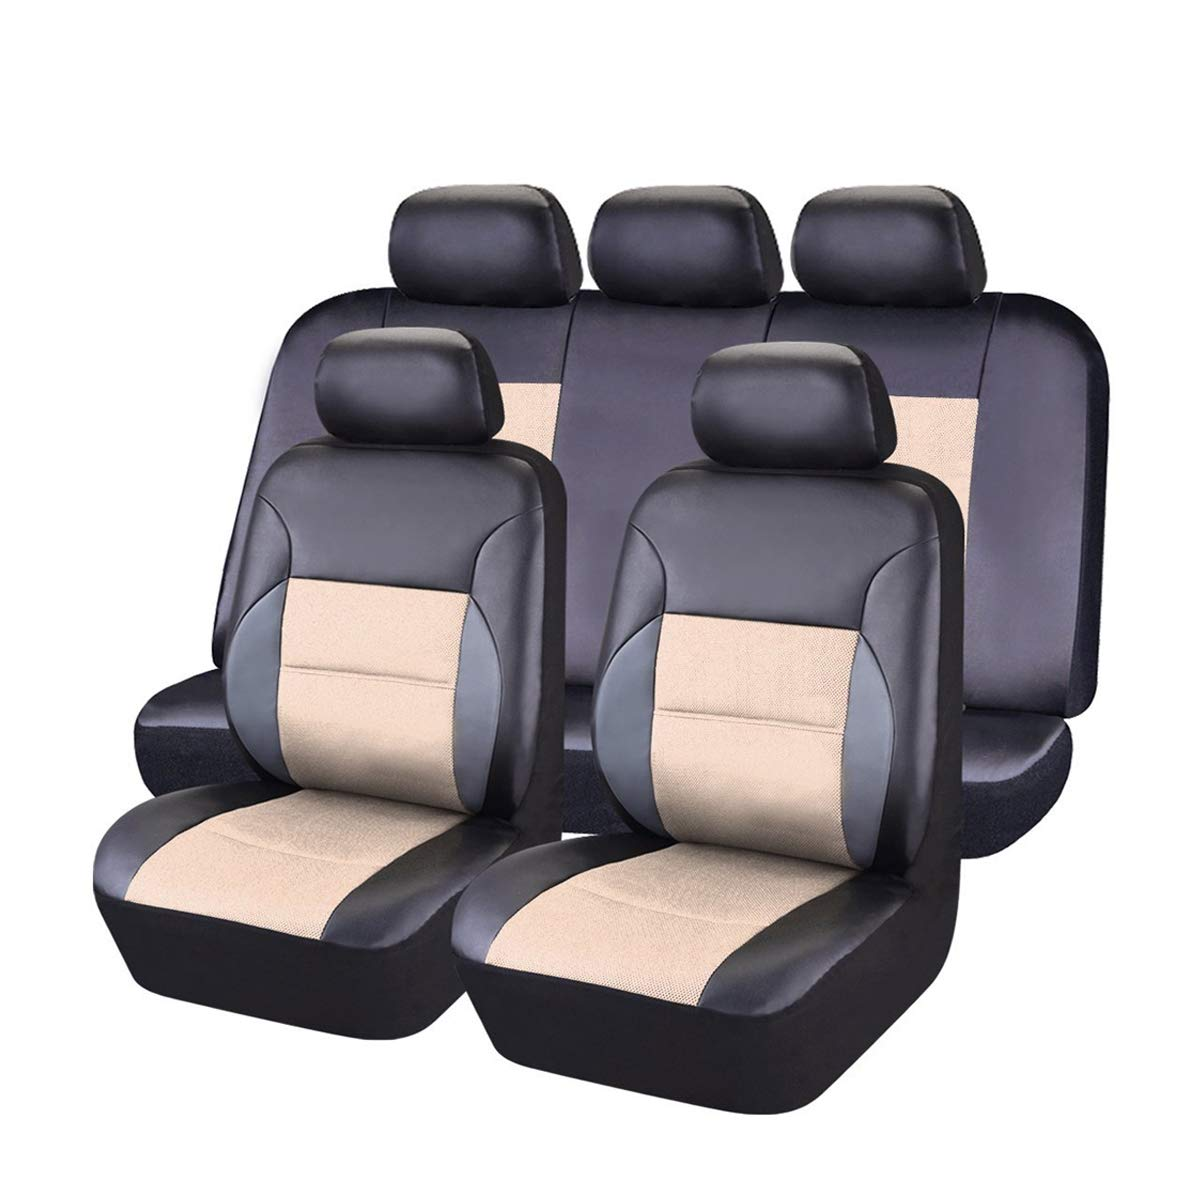 NEW ARRIVAL- CAR PASS 11PCS Luxurous Leather Universal Car Seat Covers Set,Universal fit for Vehicles,Cars,SUV,Airbag Compatible (Black and Beige) by CAR PASS